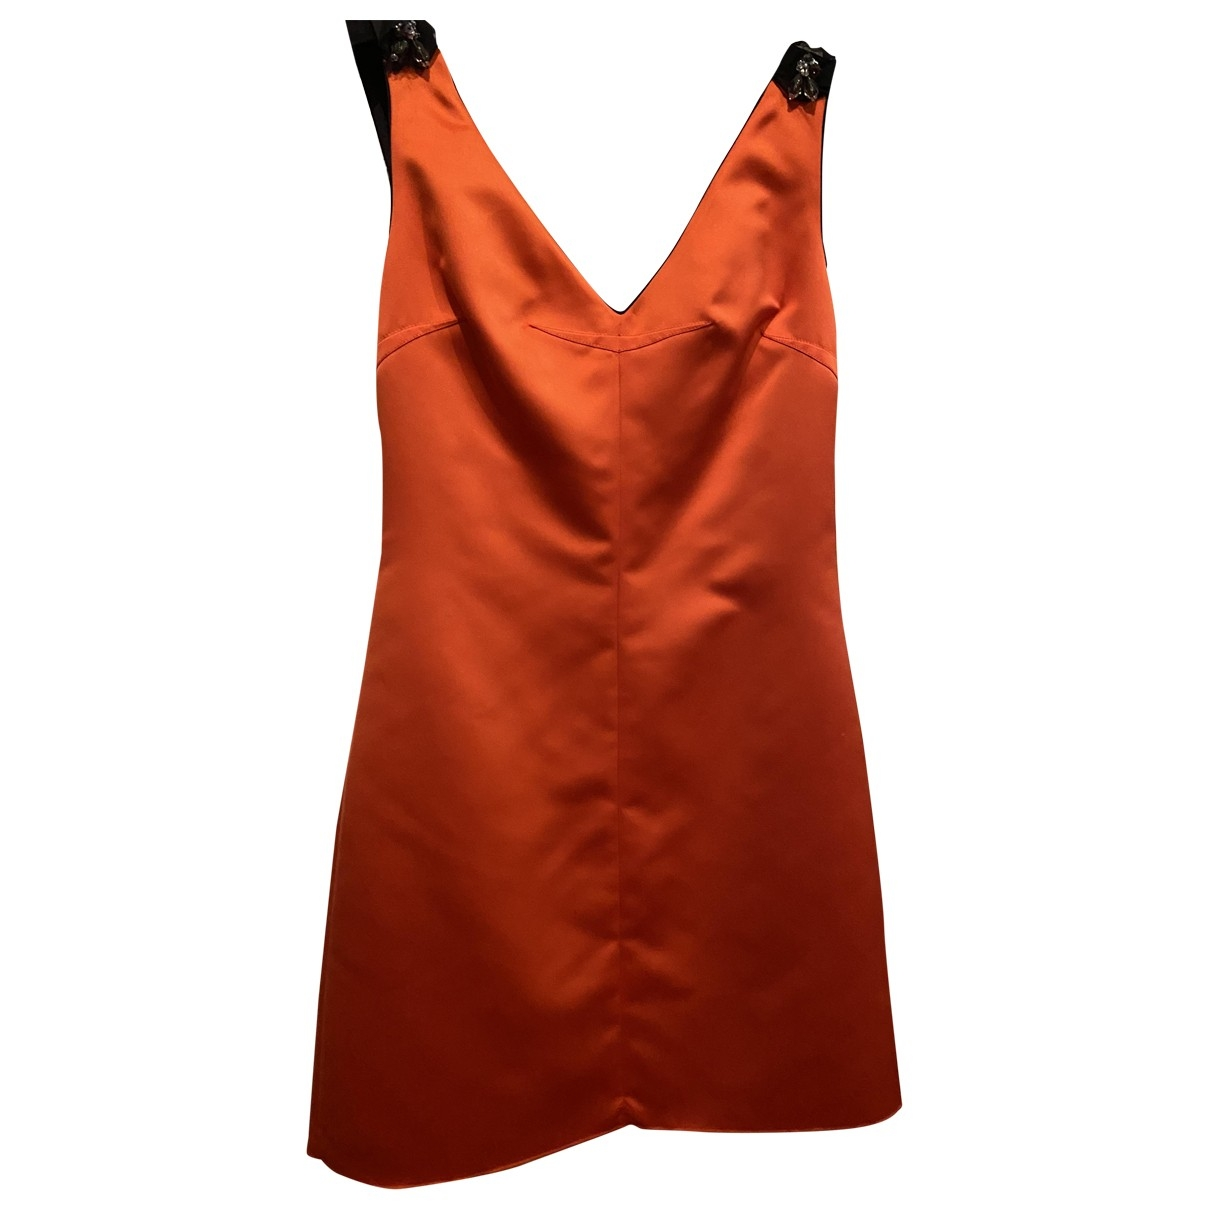 D&g \N Kleid in  Orange Polyester